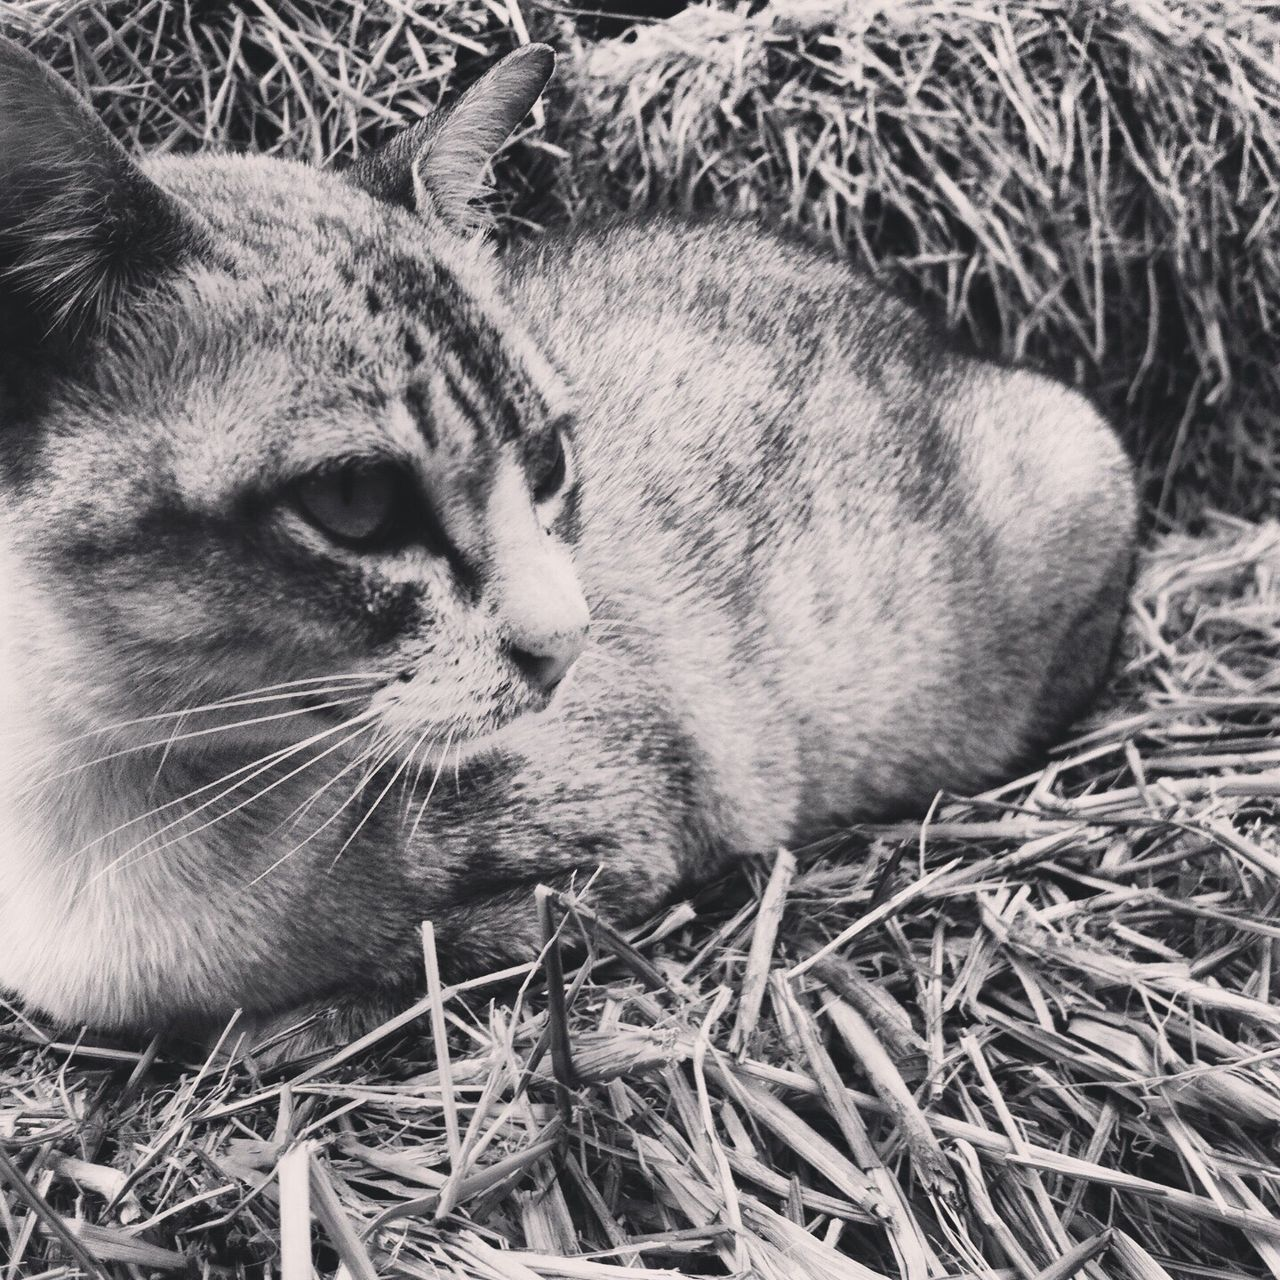 animal themes, one animal, mammal, animals in the wild, no people, feline, day, relaxation, domestic animals, close-up, outdoors, portrait, pets, grass, nature